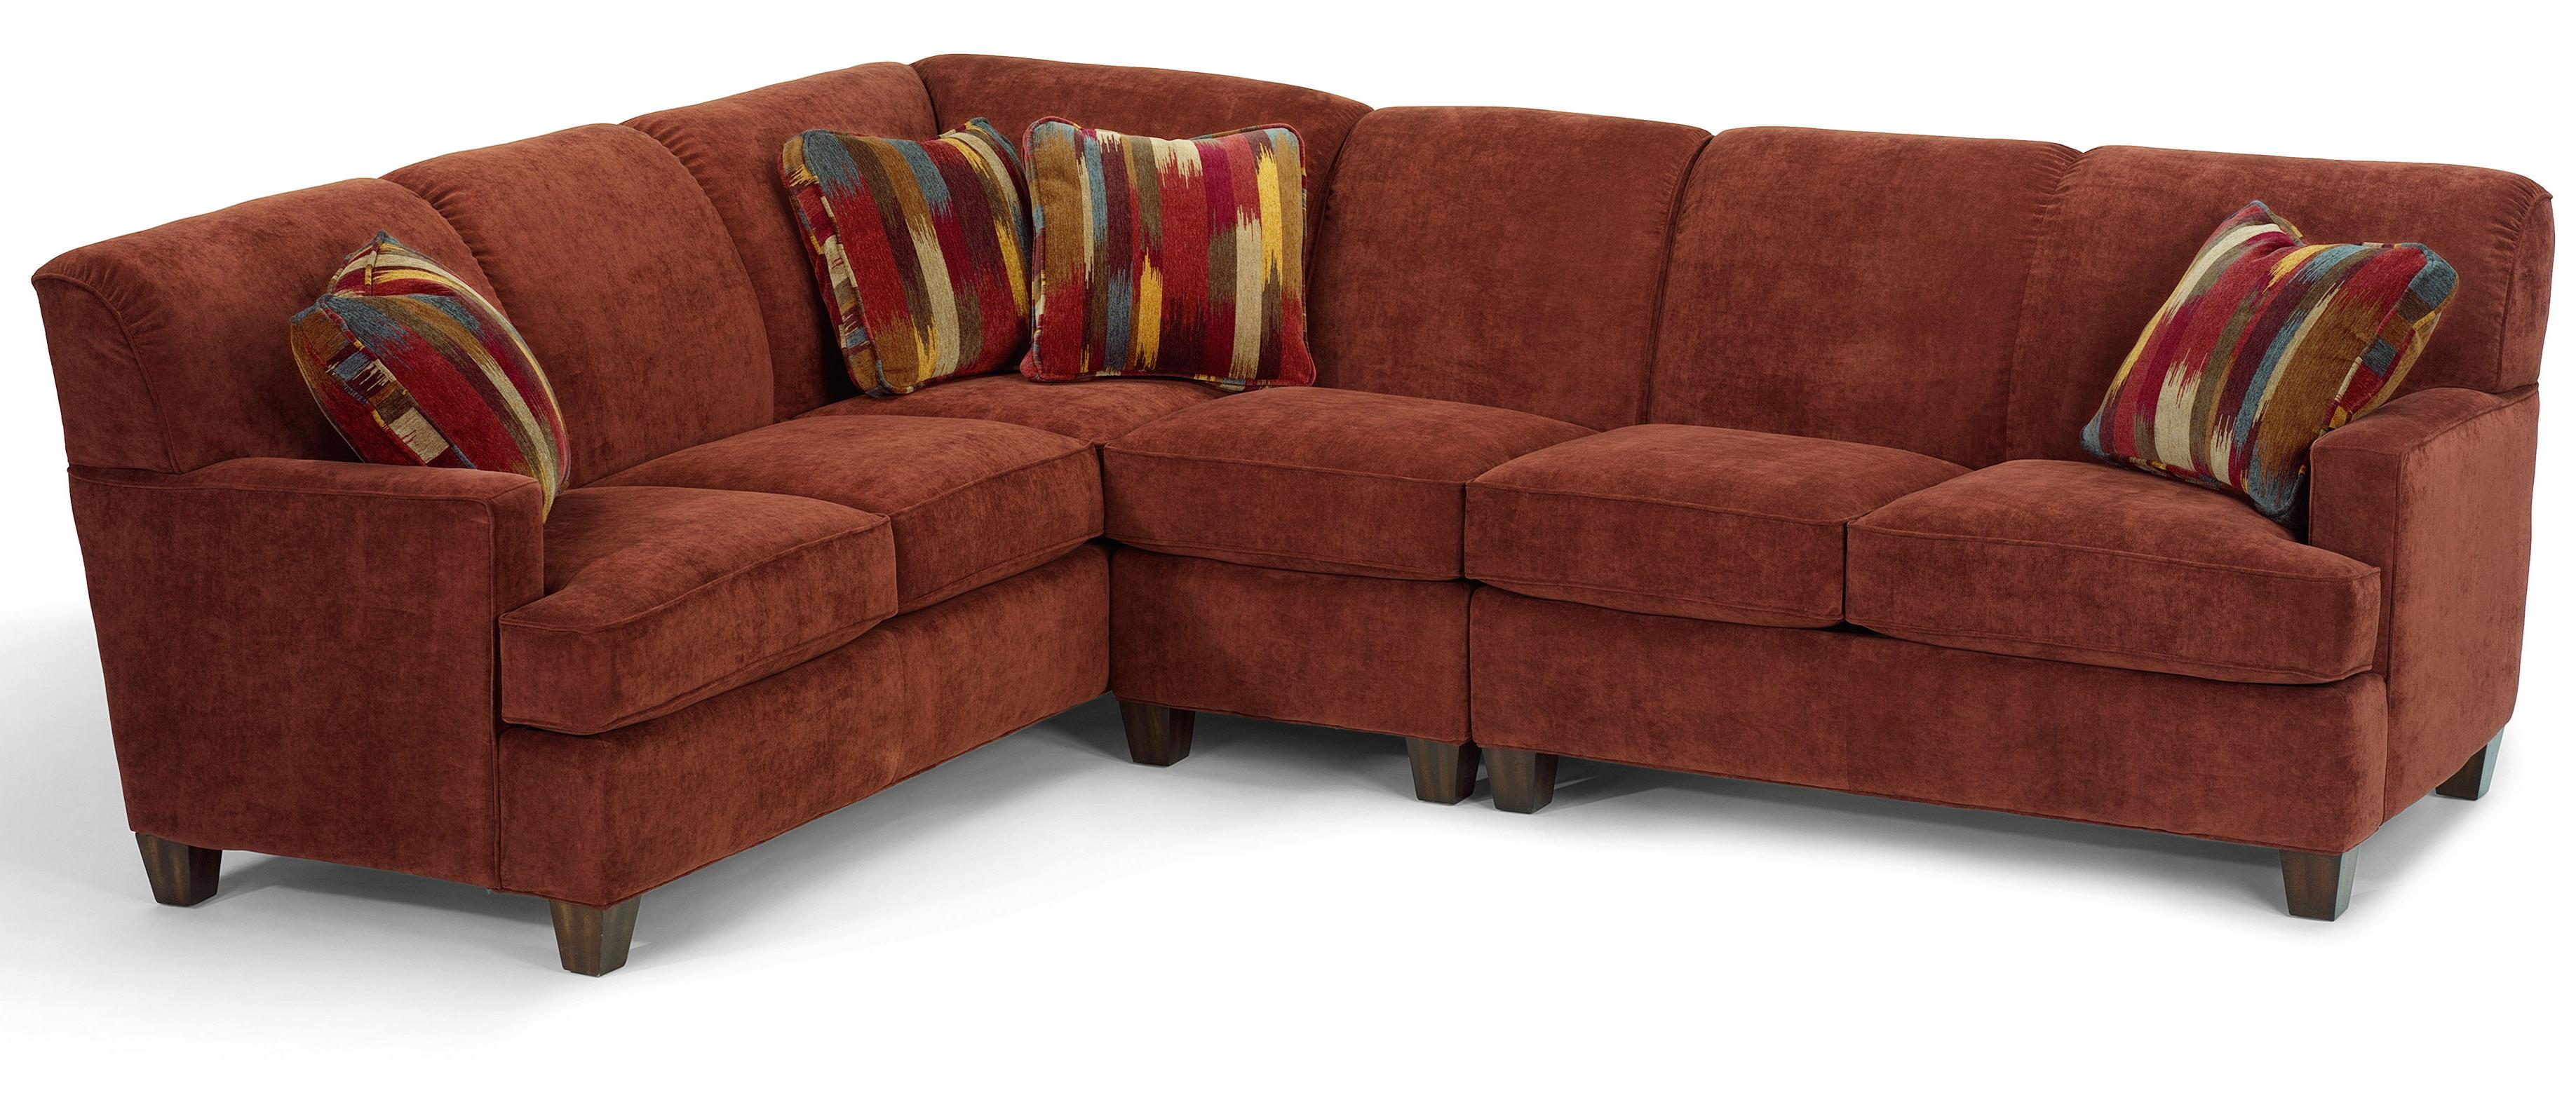 Dempsey Contemporary 3 Piece Sectional Sofa With RAF Loveseat By Flexsteel